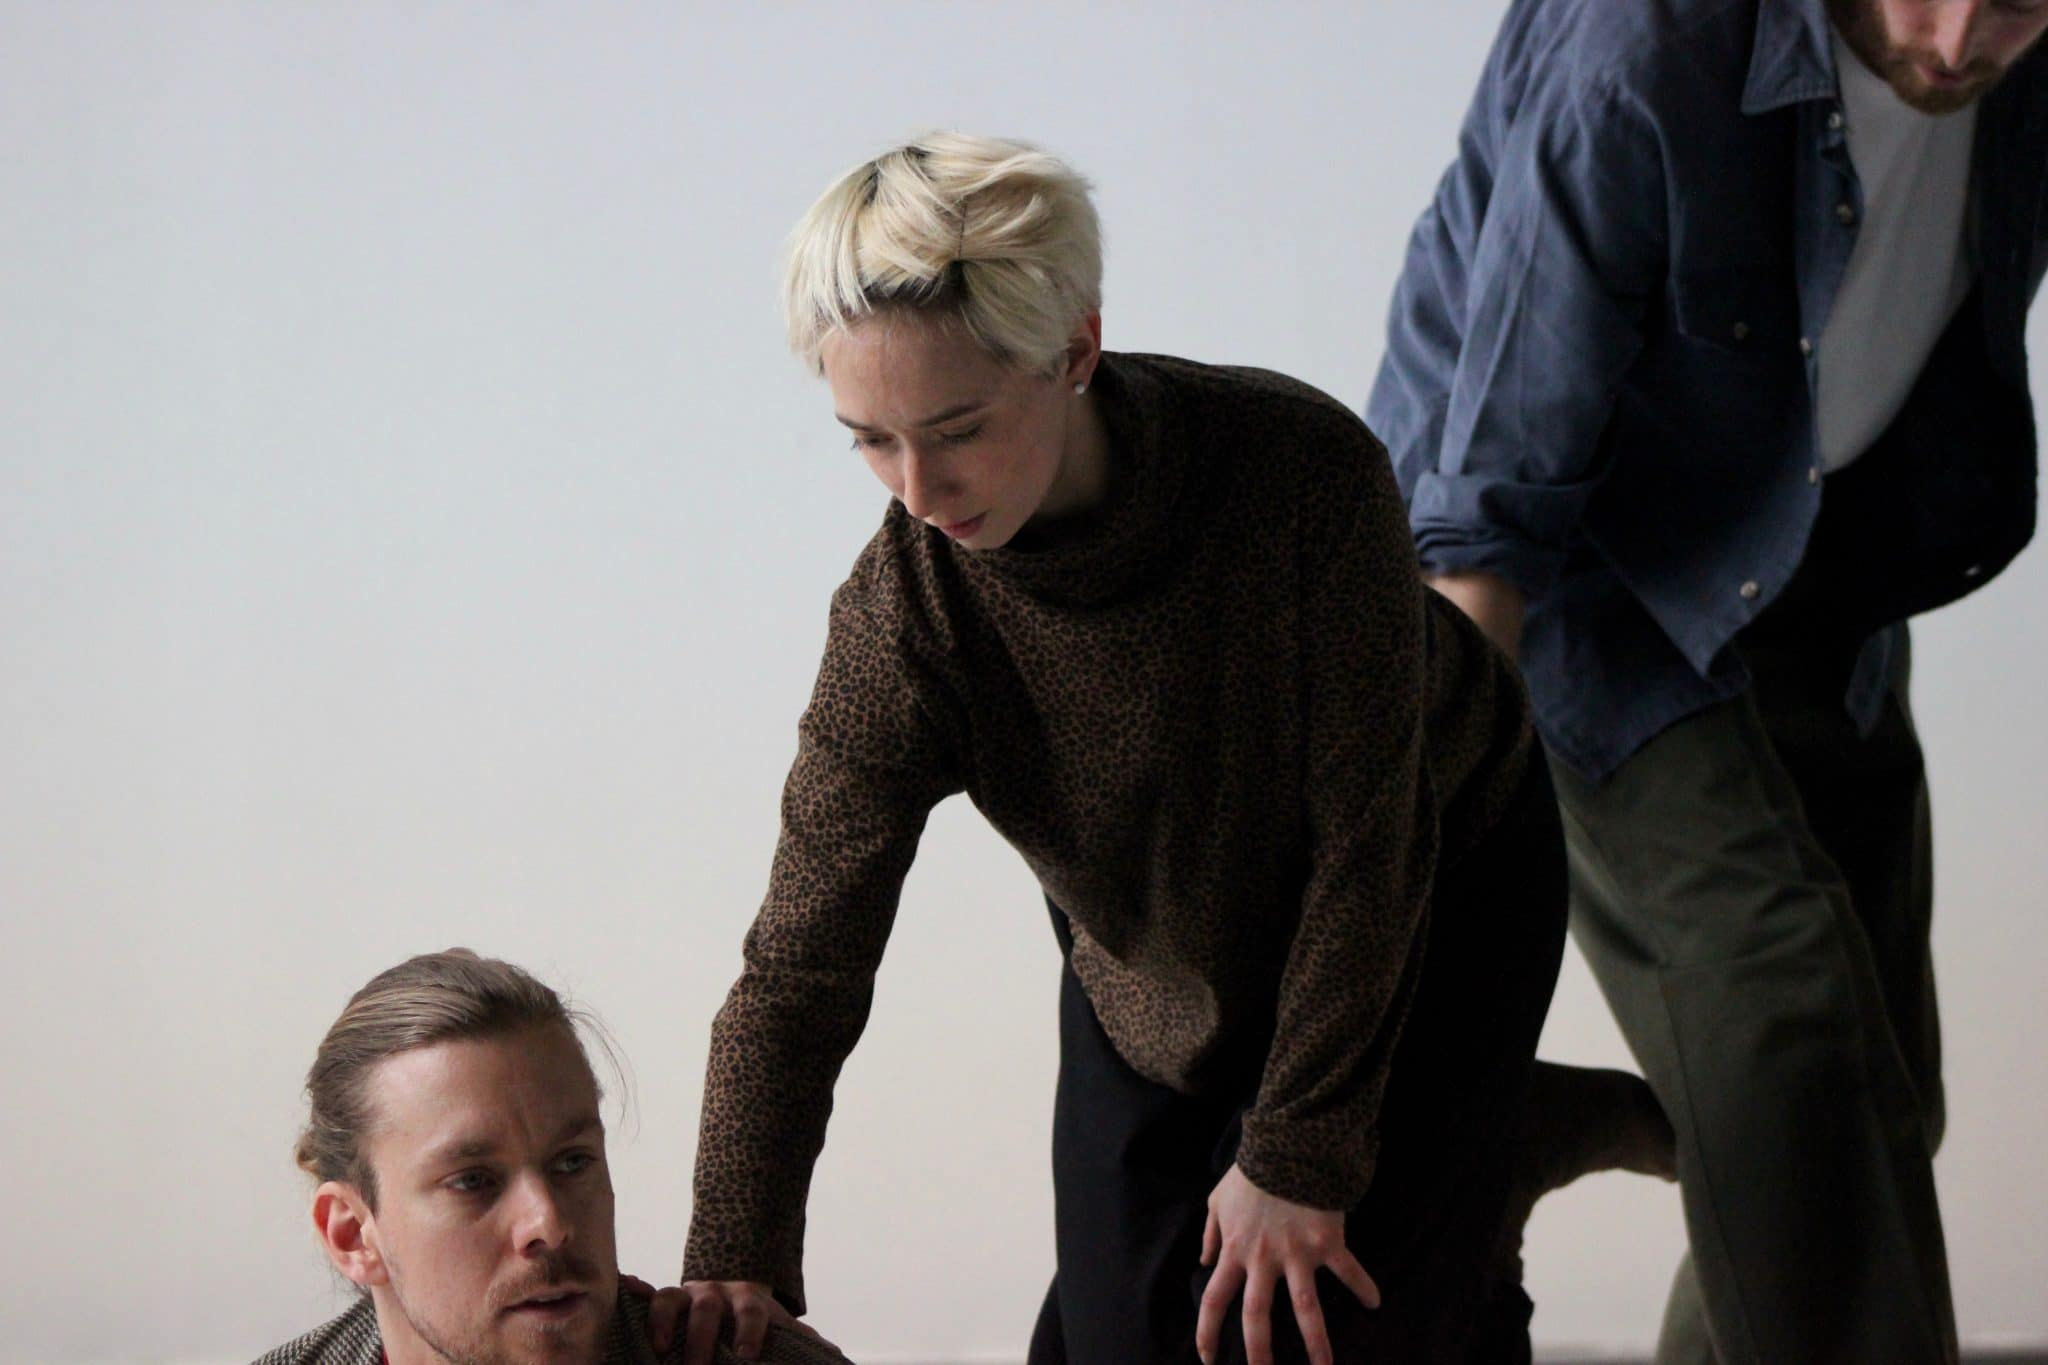 Treasure and Tat, Joel O'Donoghue, Poplar Union, dance show, dance show in East London, contemporary dance, tower hamlets, Poplar, things to do, whats on